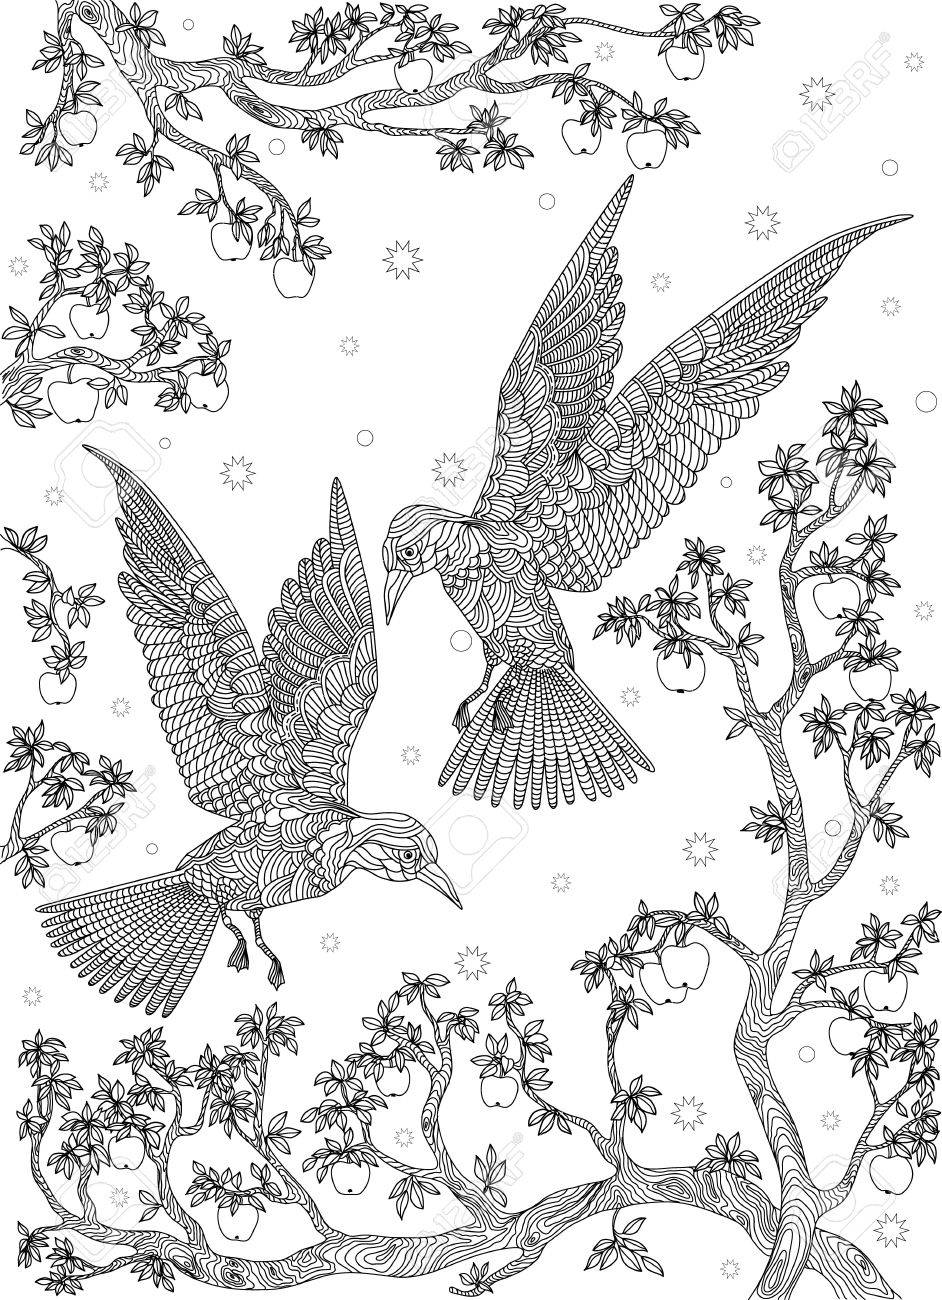 Hand Drawn Bird Birds On A Branch Apple Tree Coloring Page Royalty Free Cliparts Vectors And Stock Illustration Image 53653631